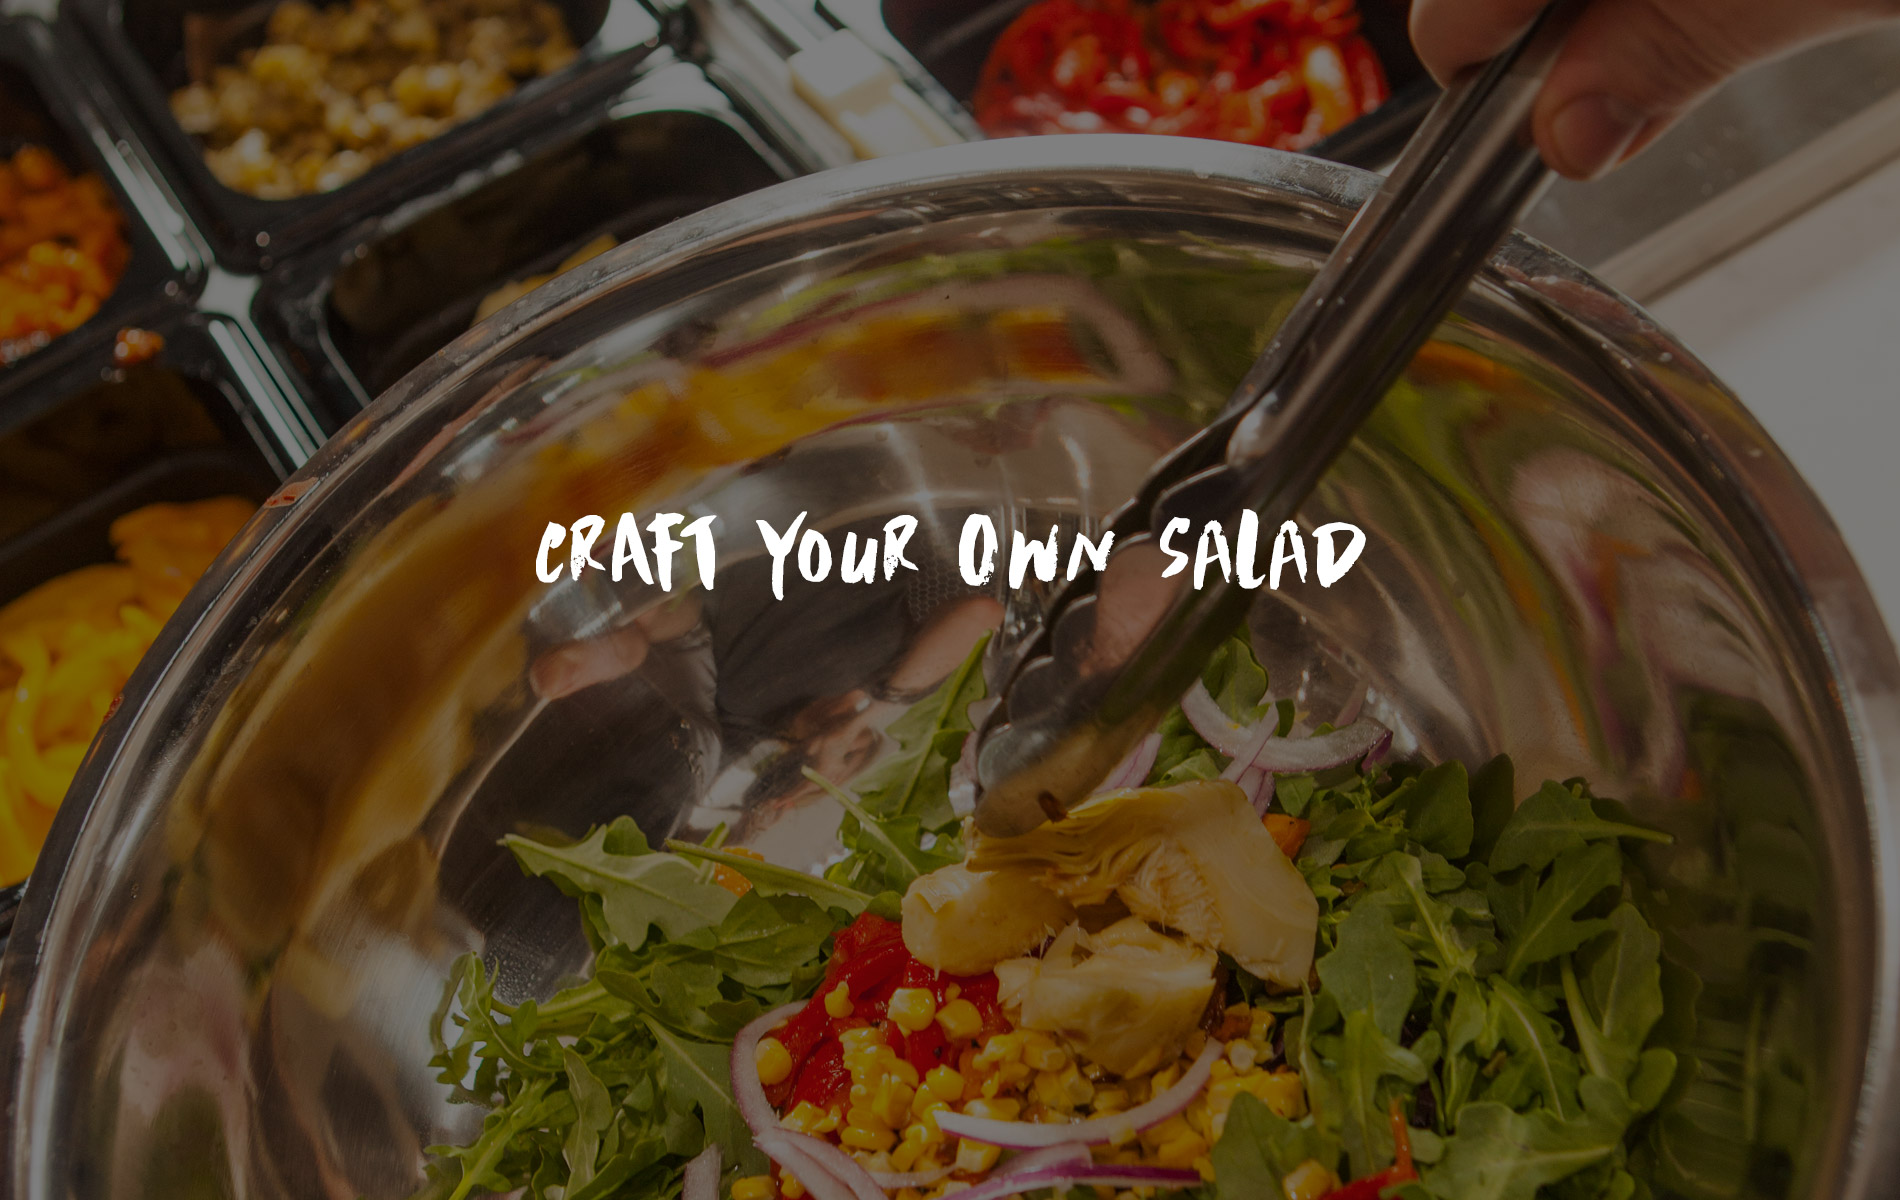 Craft Your Own Salad